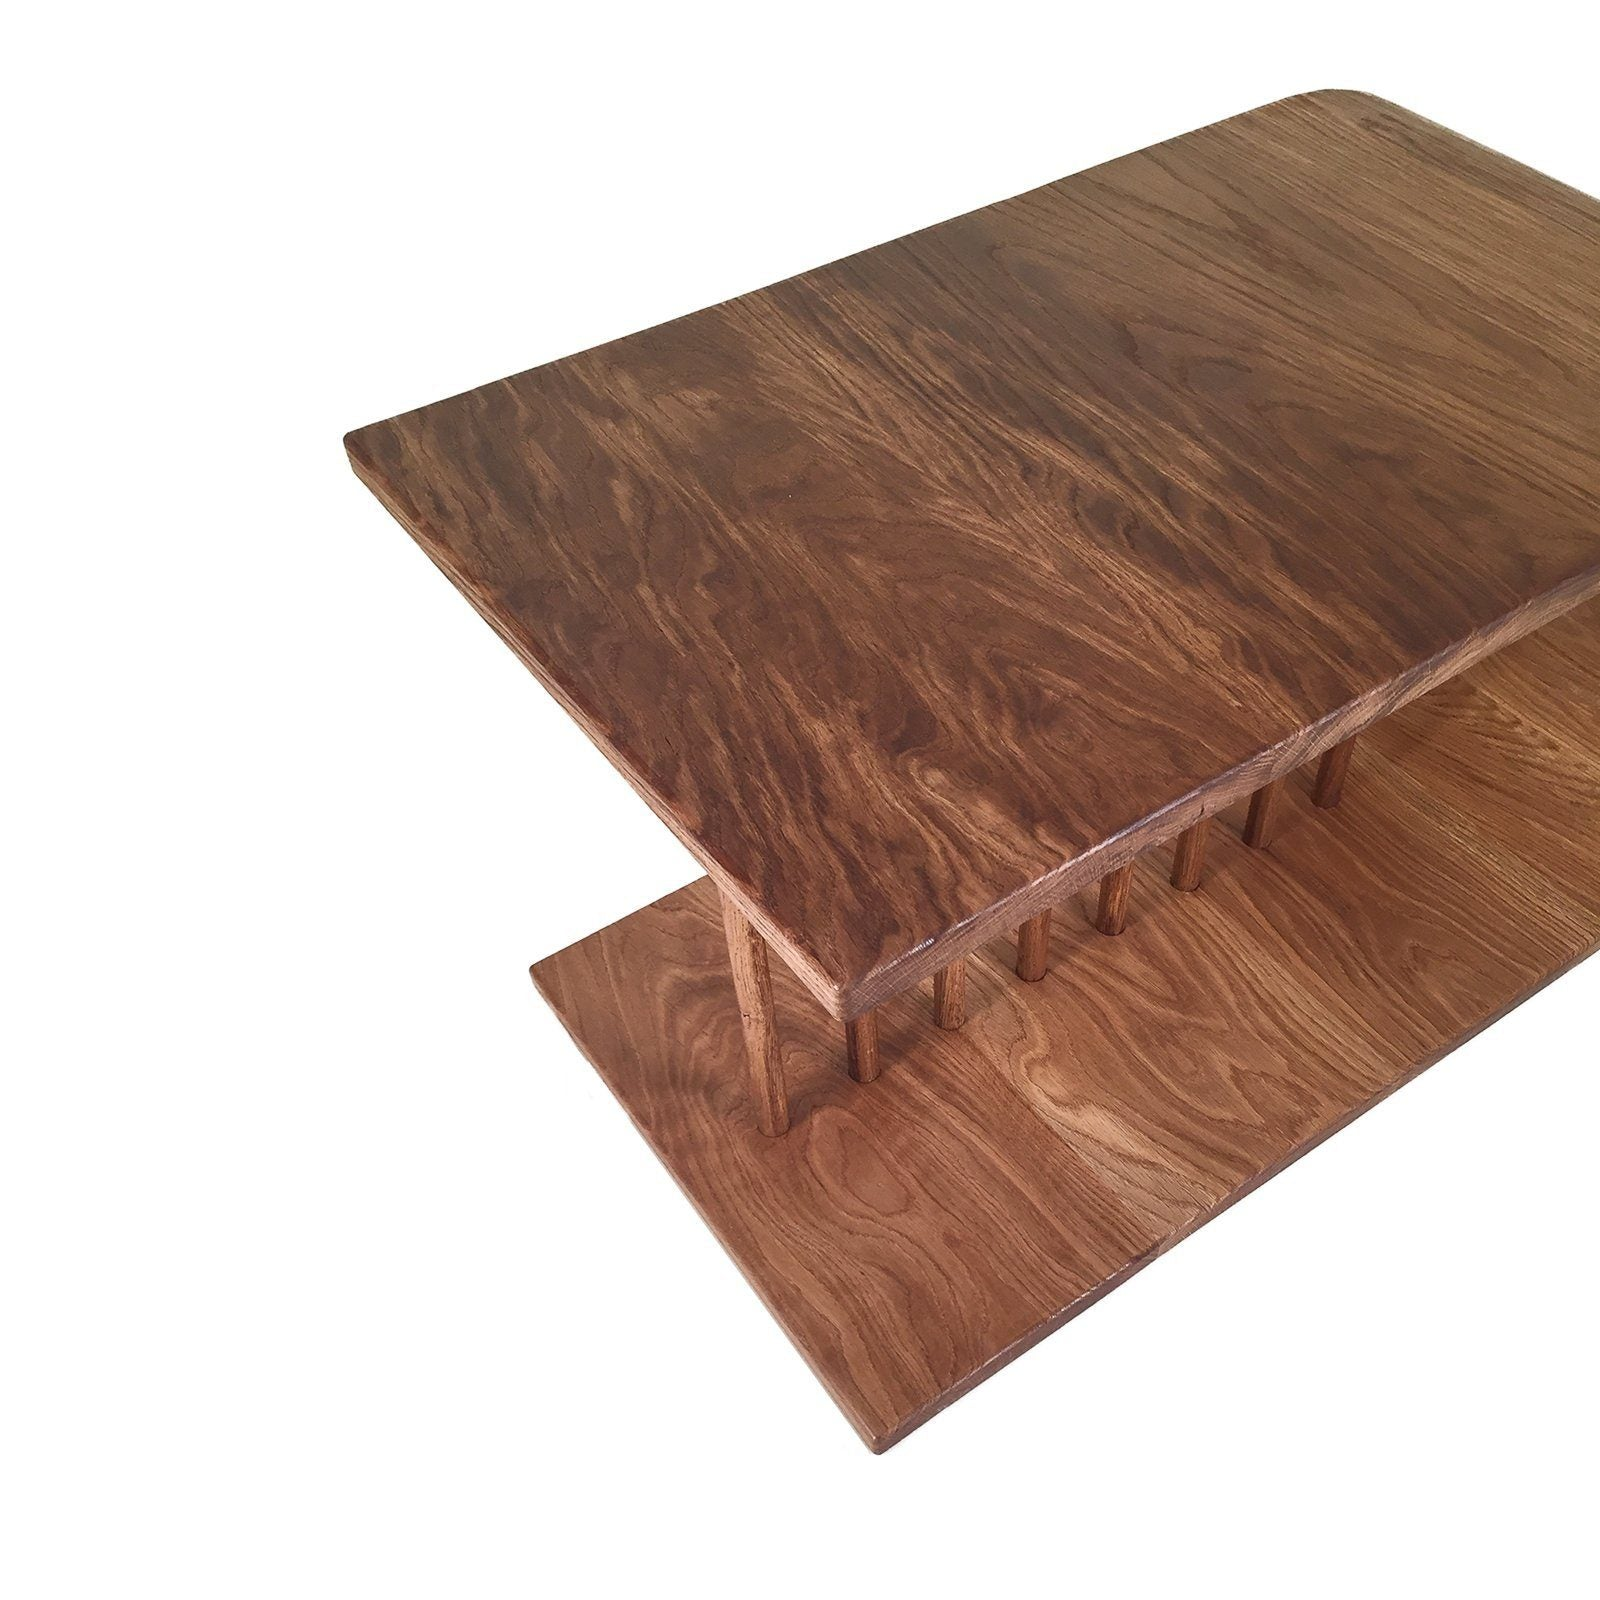 Awesome ... Tables U003e Coffee Table Rectangular   The Euclid Coffee Table By Peg  Woodworking ...